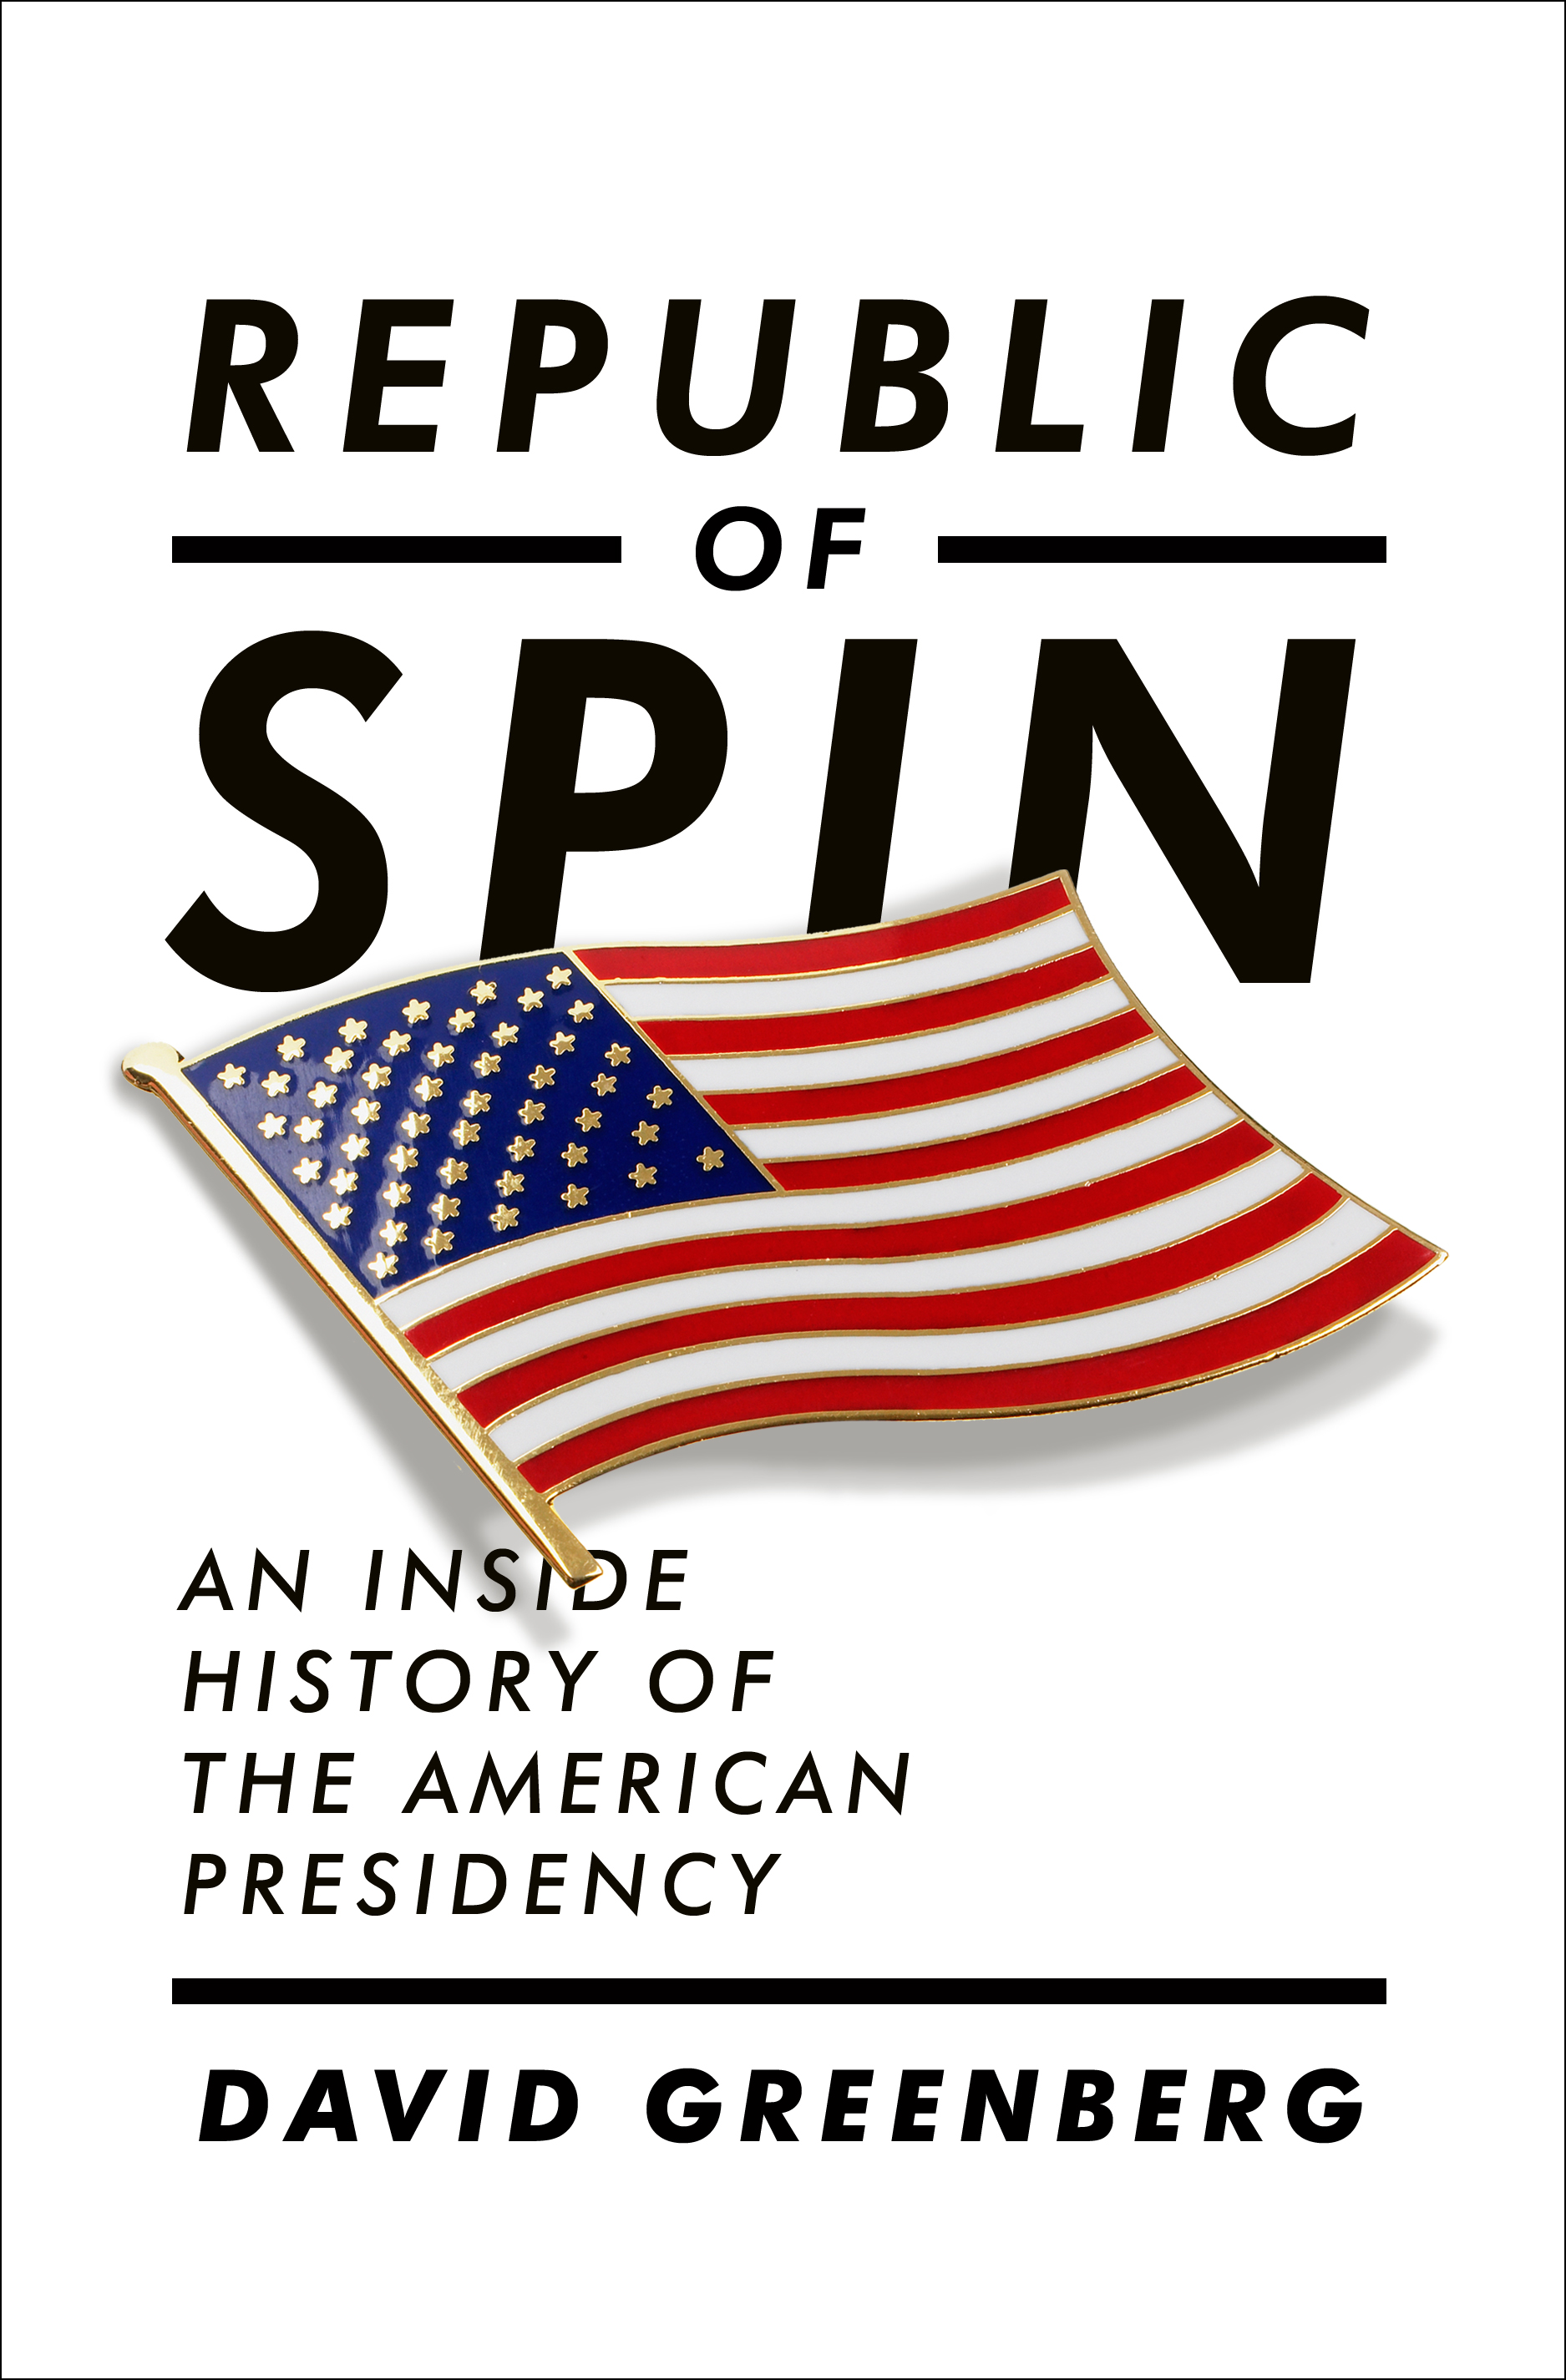 Republic of Spin  by David Greenberg  Winner of the Goldsmith Book Prize (2017) and the NCTE George Orwell Award for Distinguished Contribution to Honesty and Clarity in Public Language